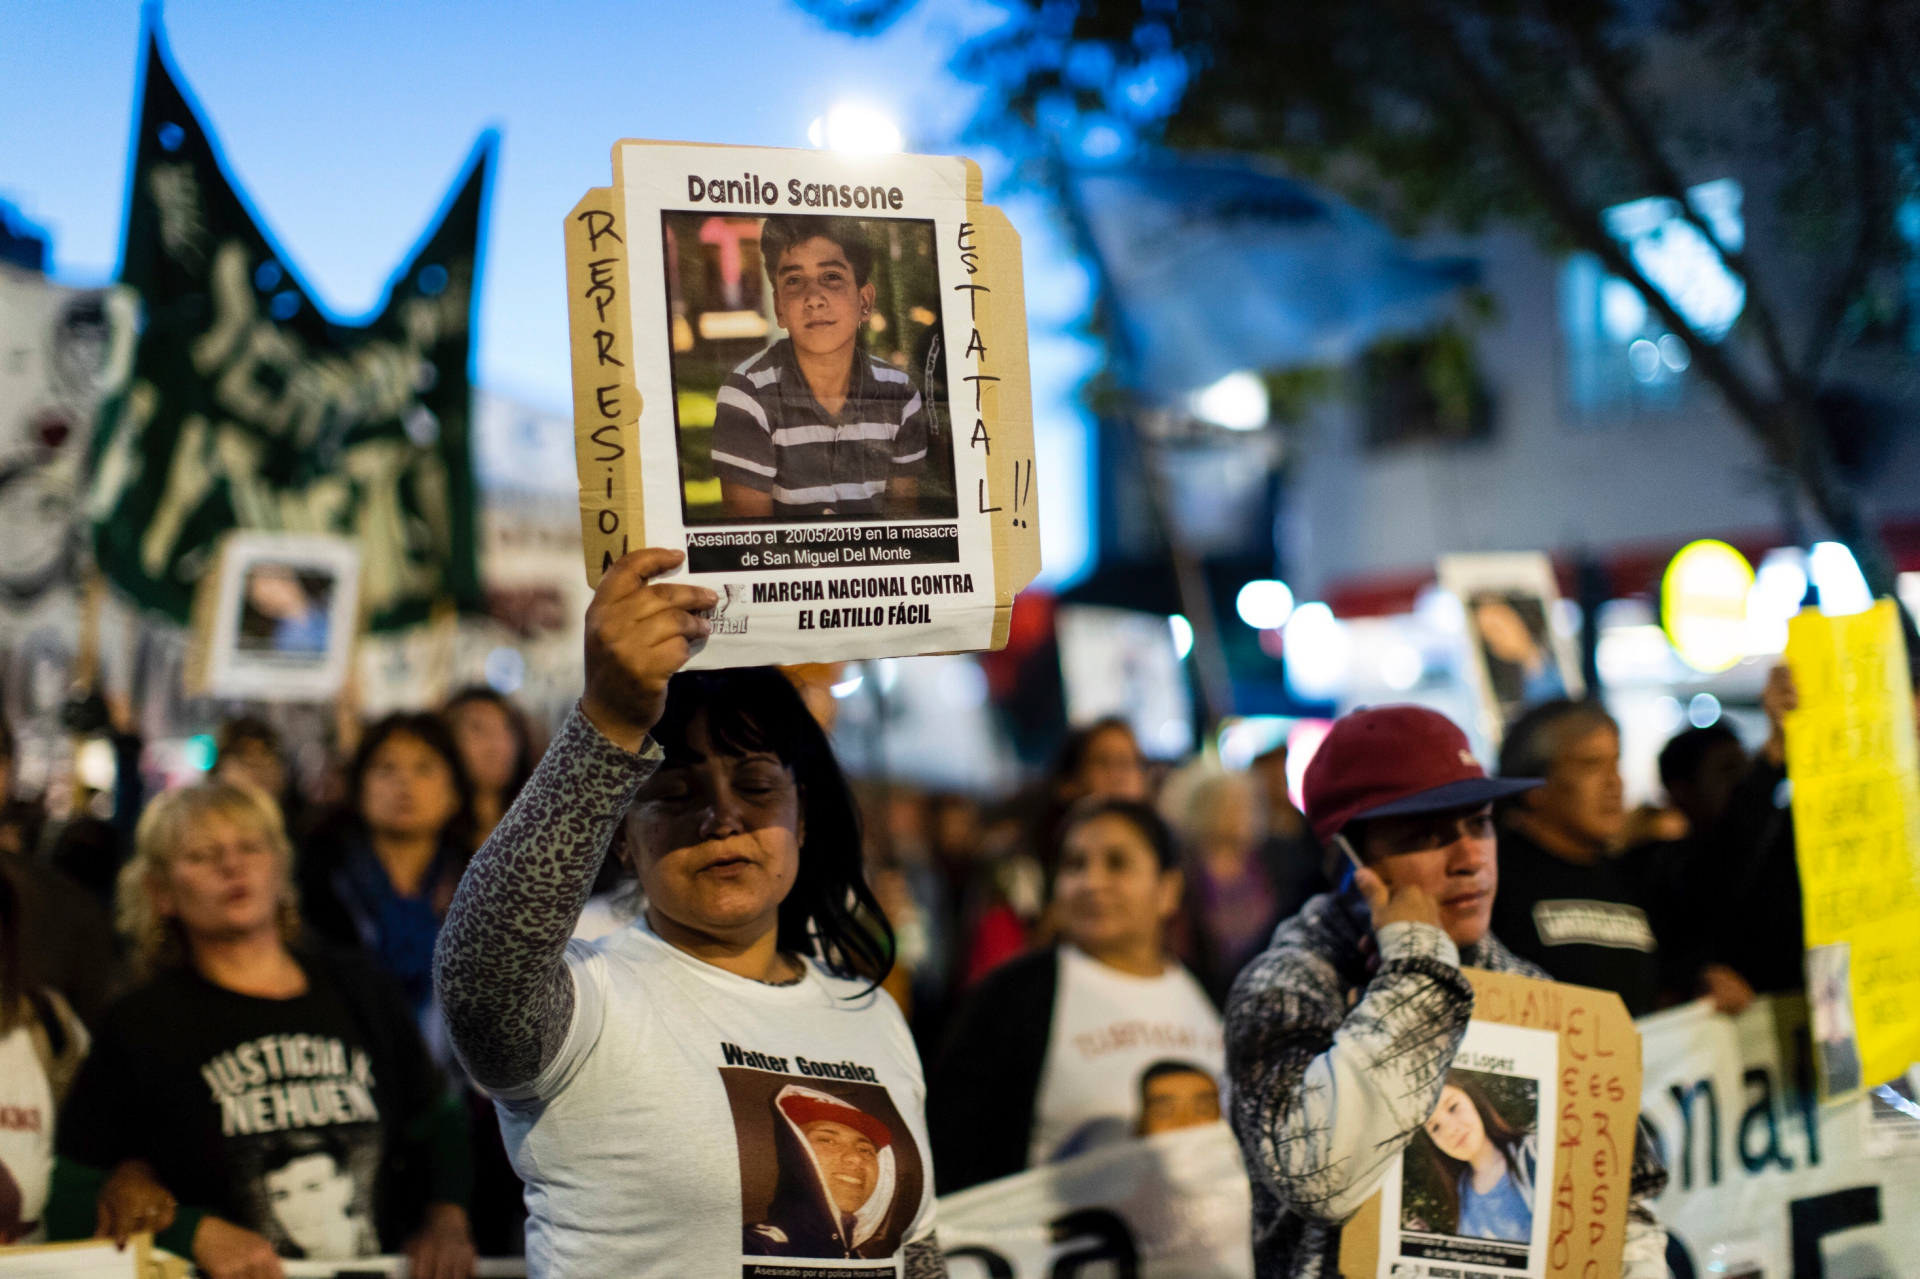 Argentines want justice after police car chase leaves 4 dead